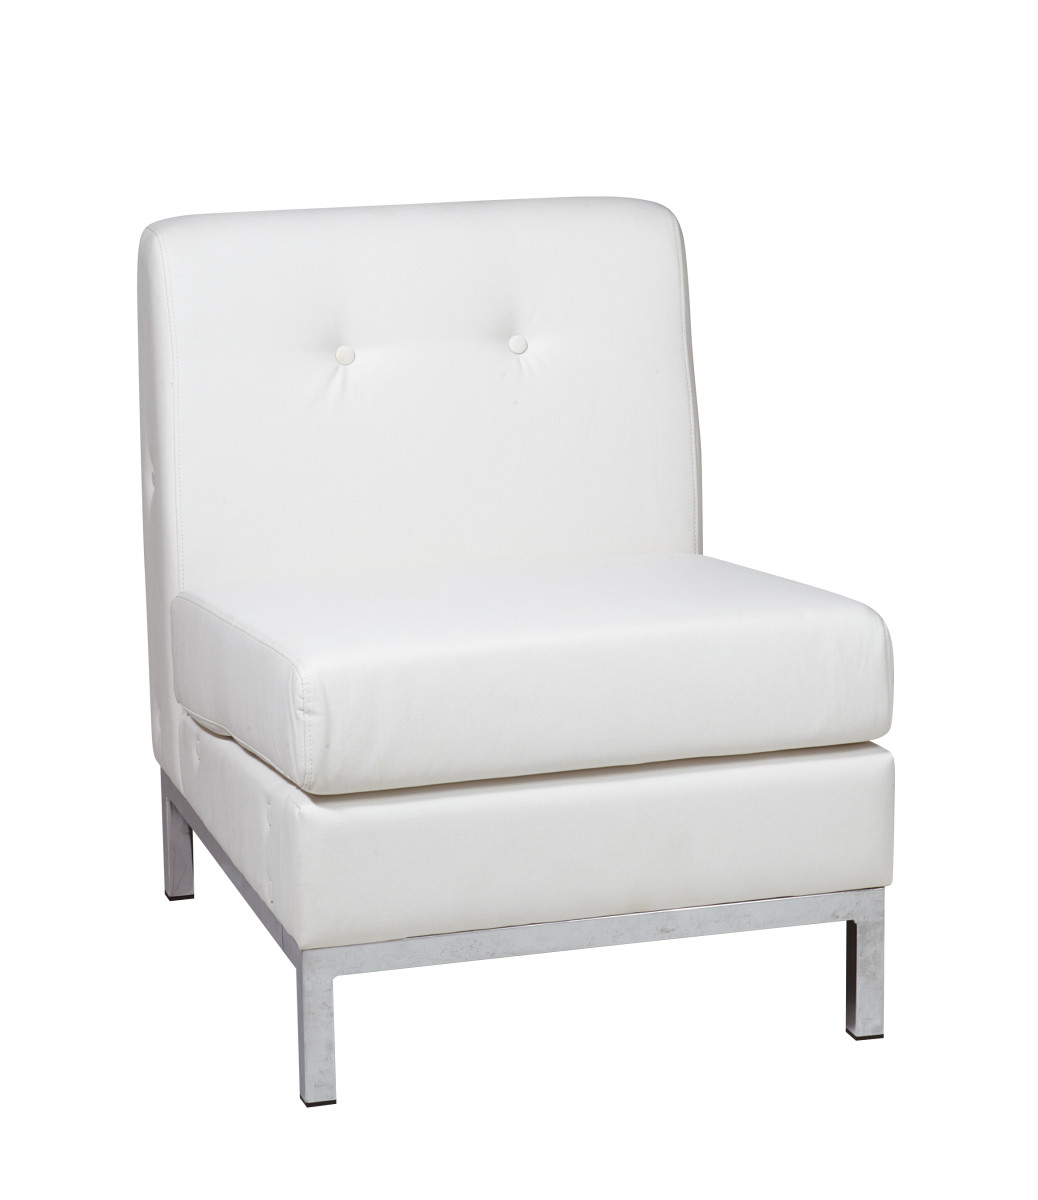 Faux Leather Sofa In A Box Wall Street Armless Chair In White Faux Leather